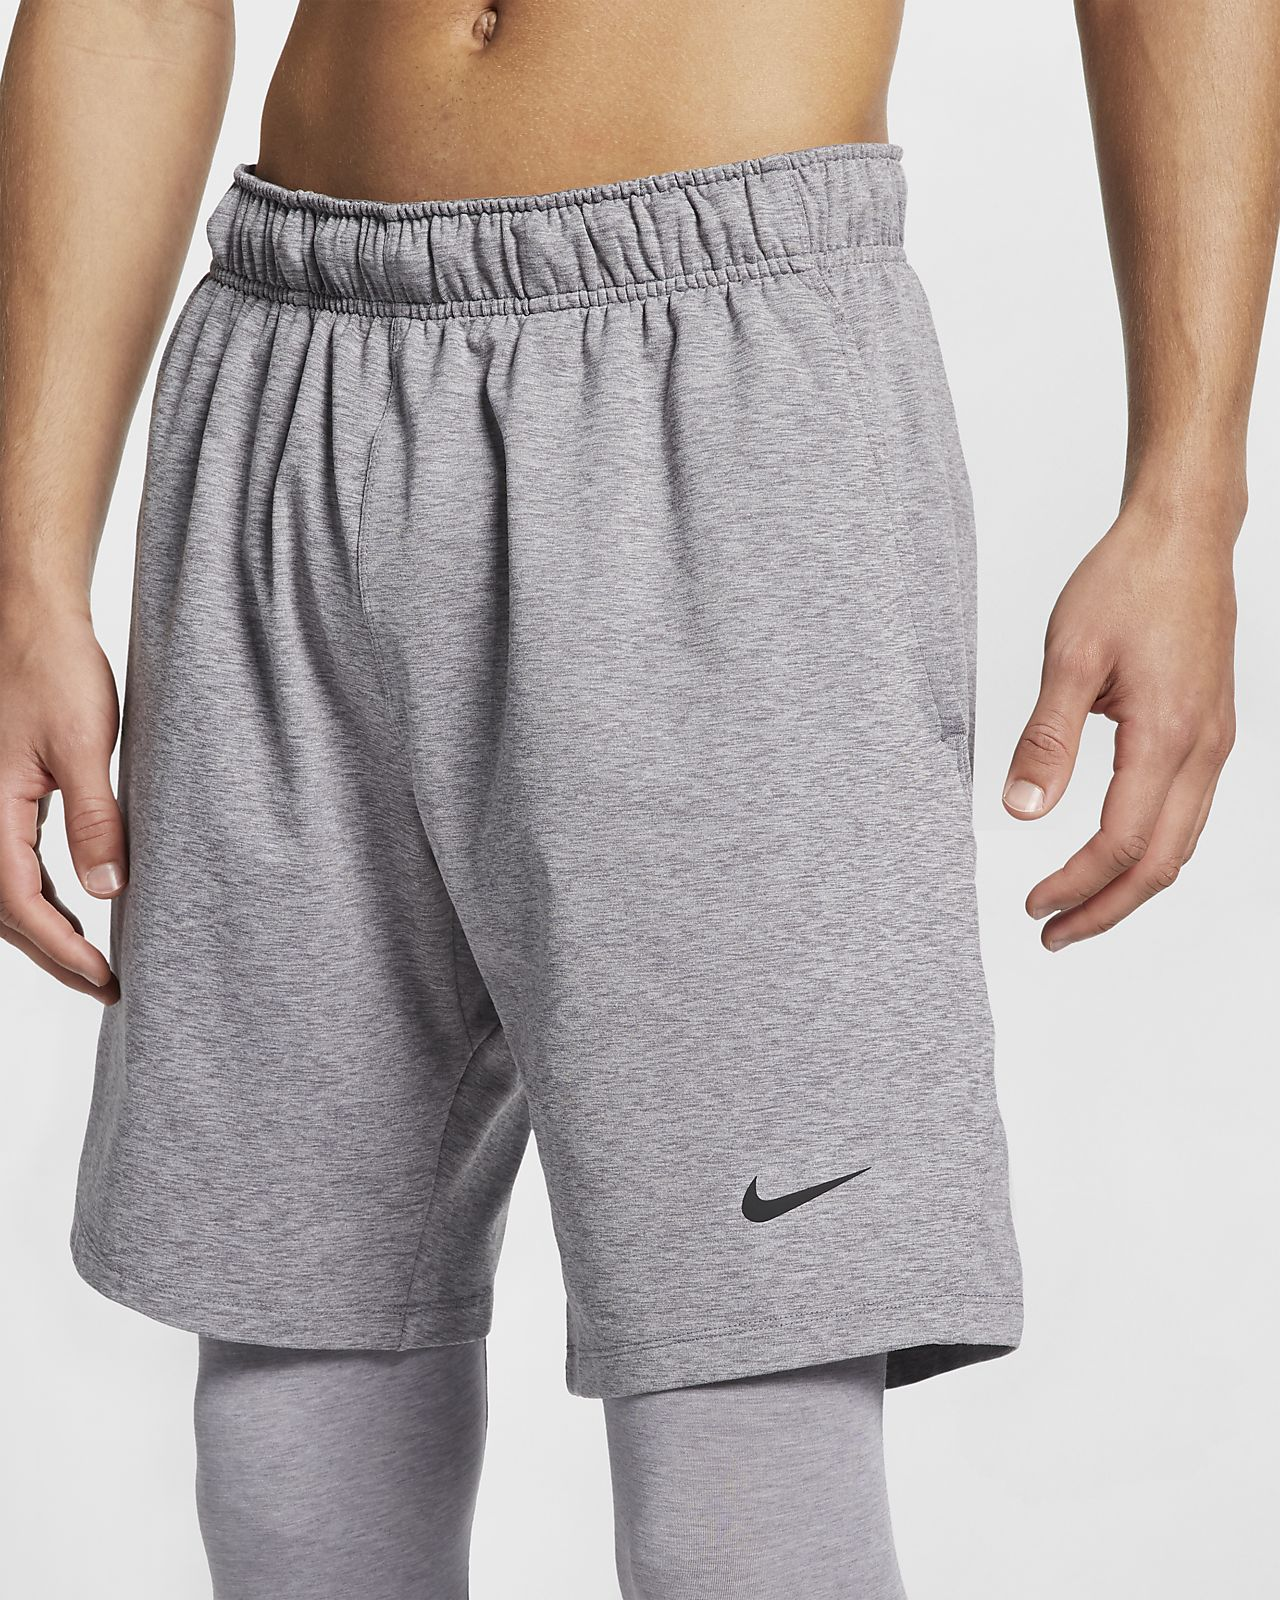 Nike Dri-FIT treningsshorts for yoga til herre